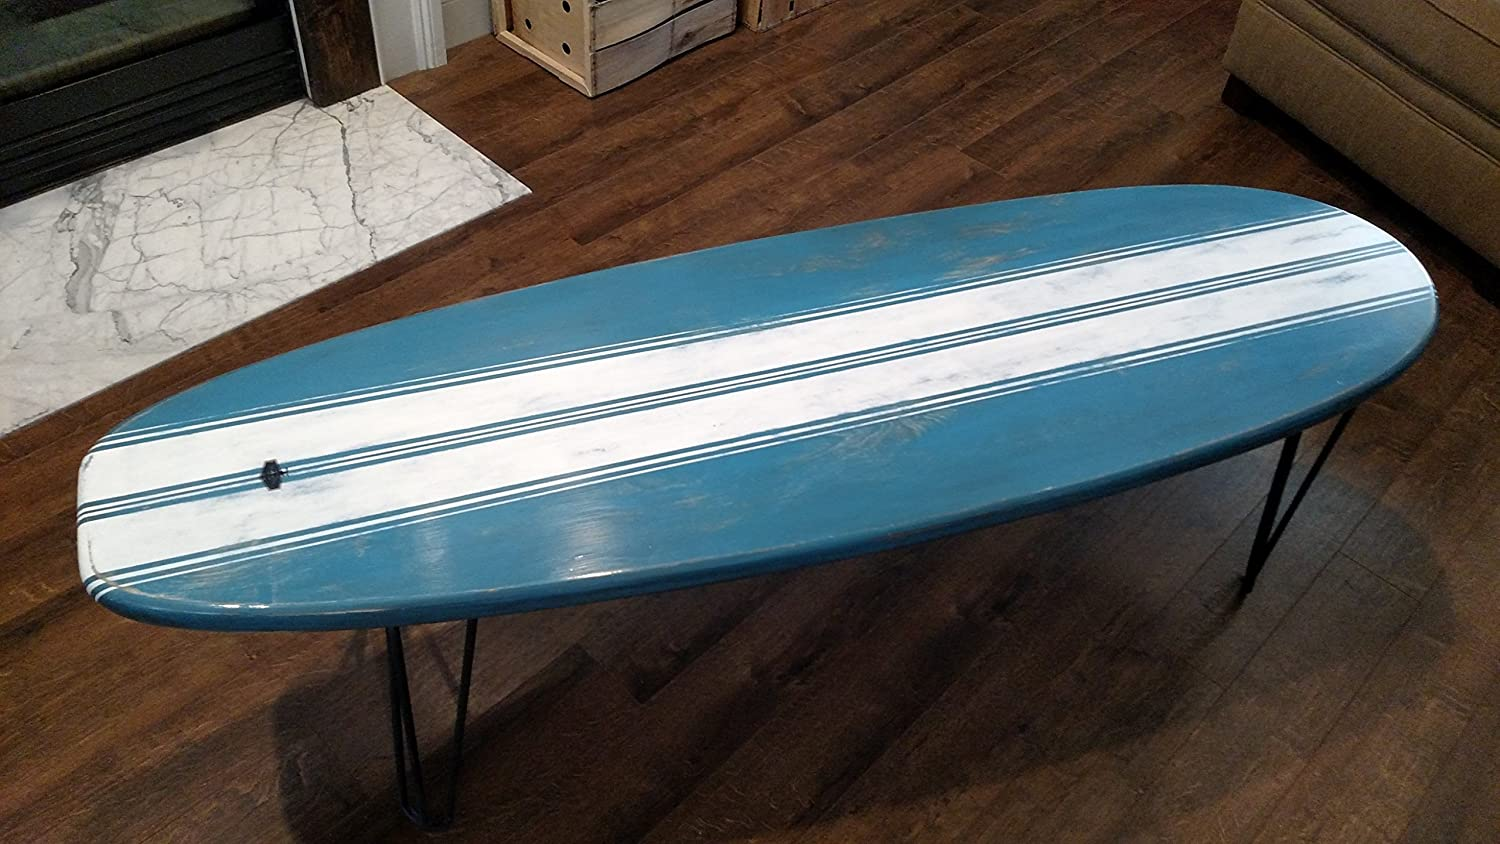 surfboard furniture. Surfboard Furniture. Amazon.com: Coffee Table Wooden Weathered Surf Furniture 5 Ft